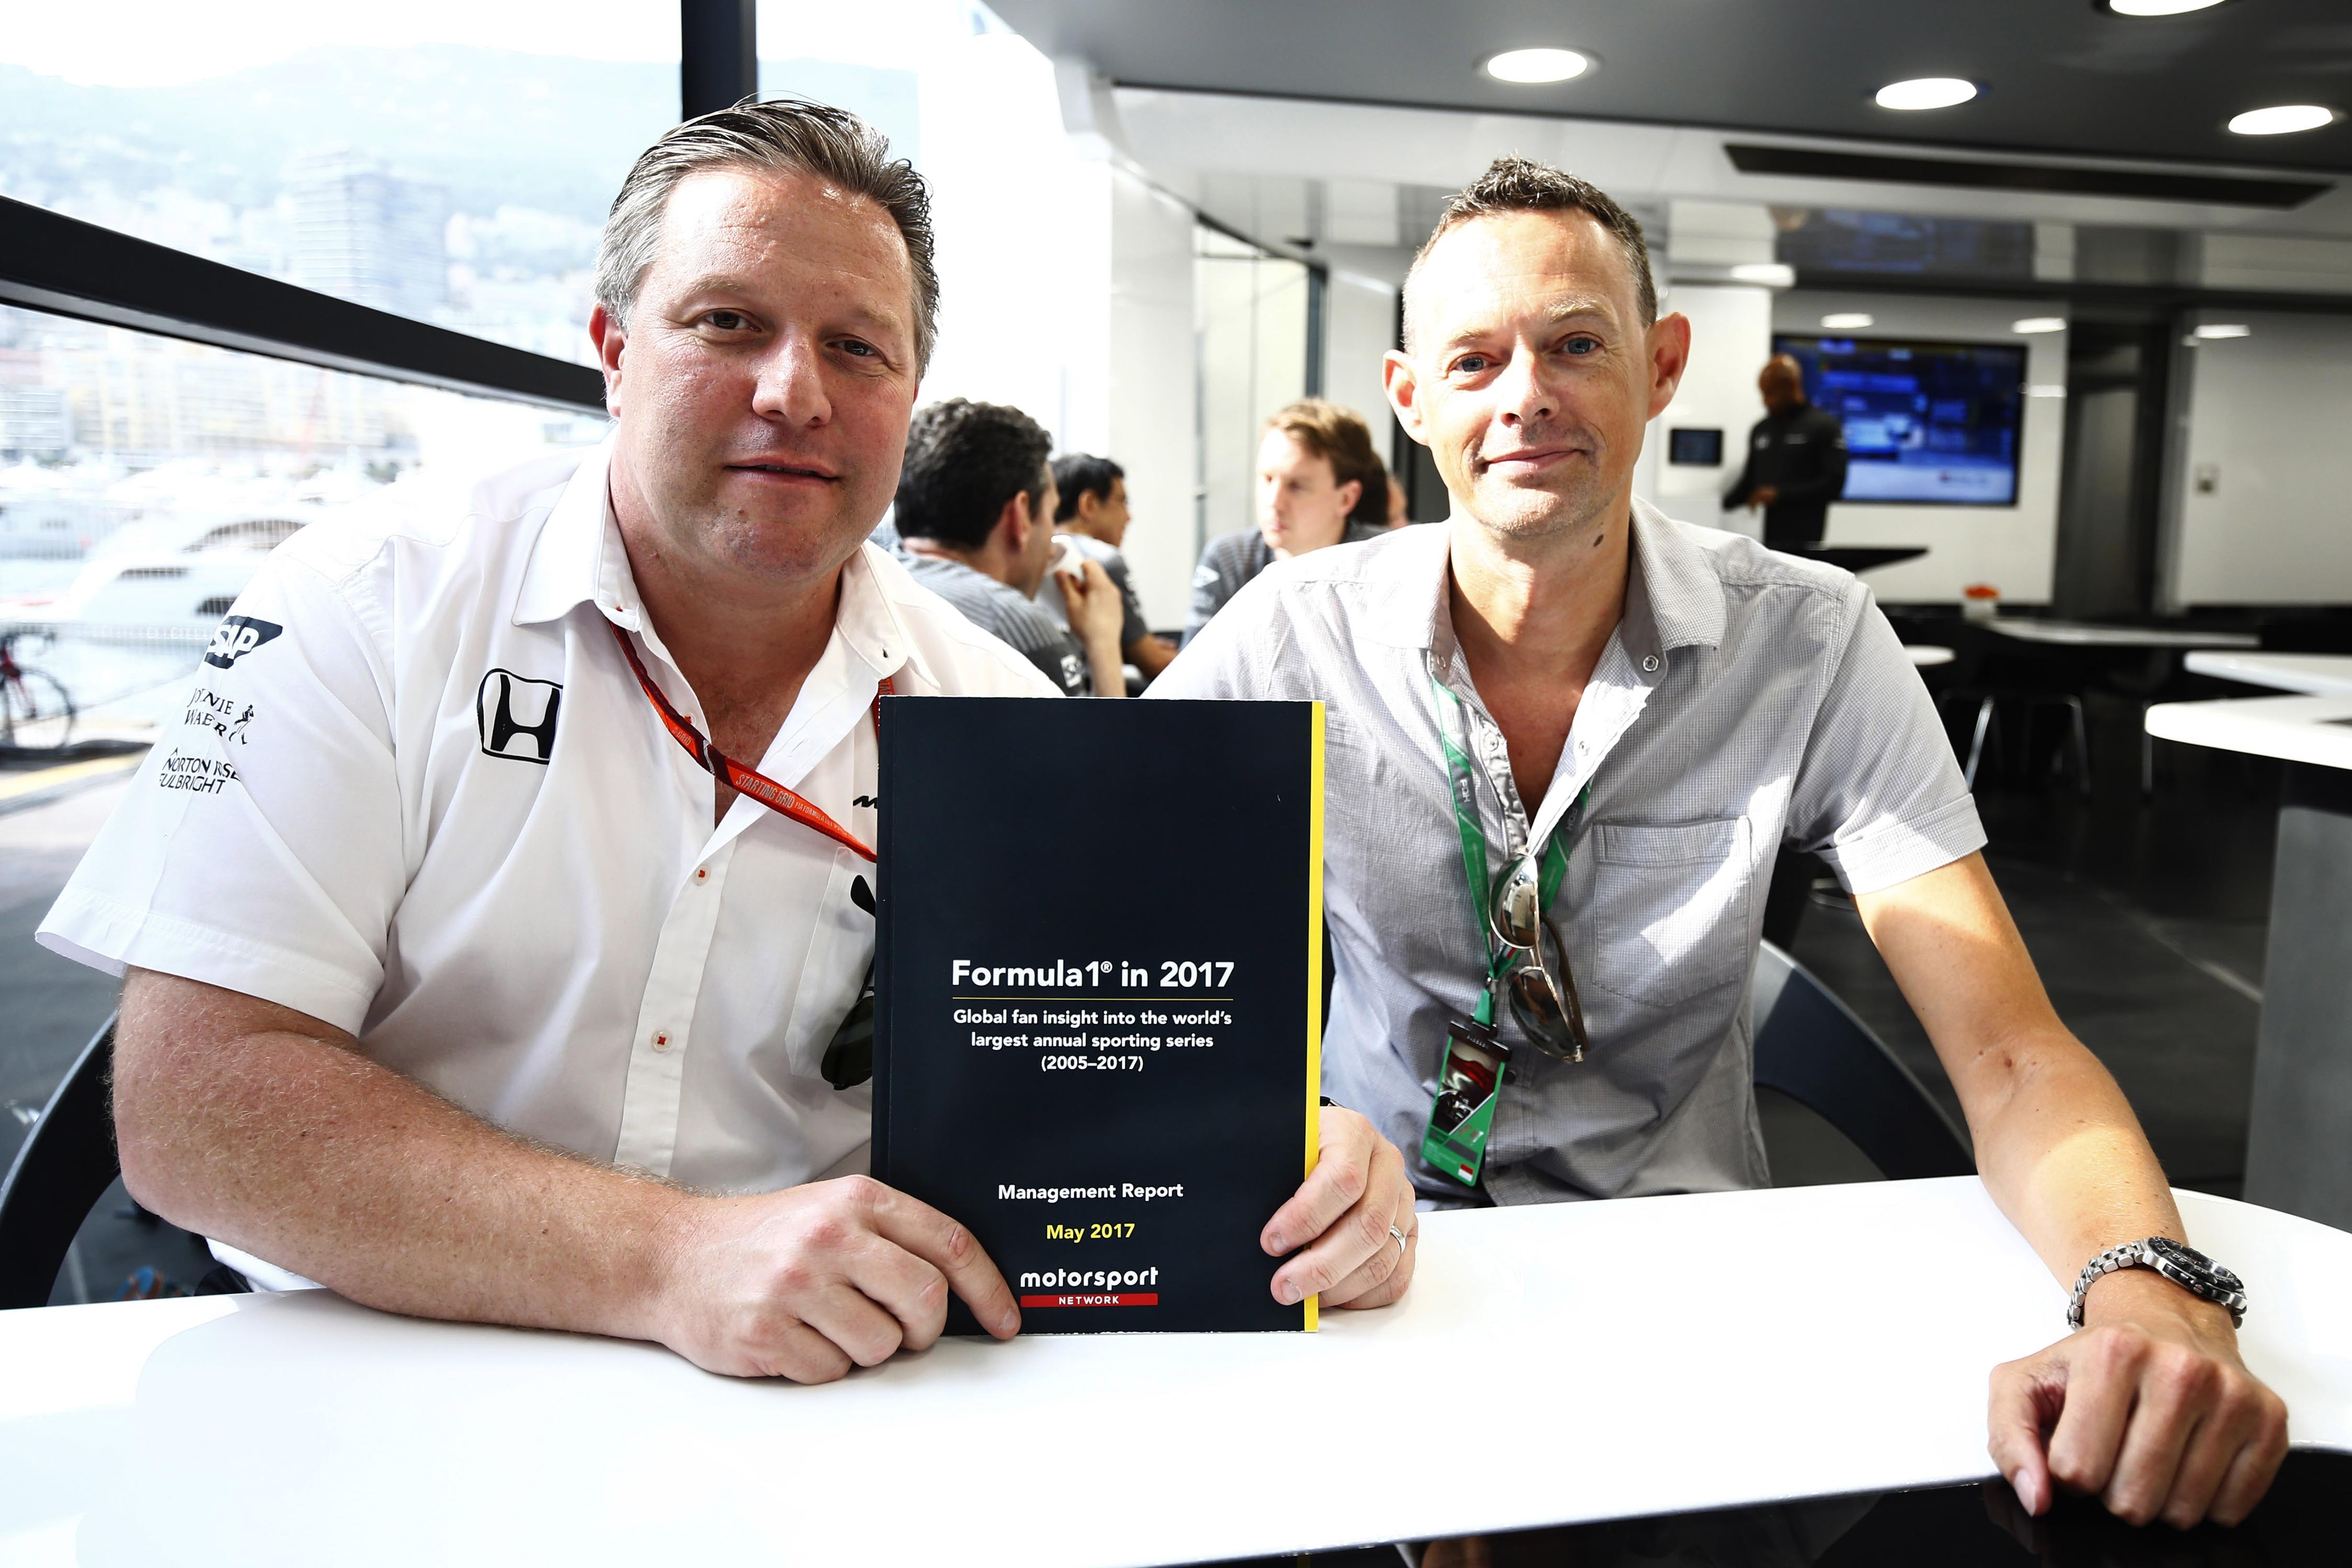 Motorsport Network Chairman Zak Brown and Editor-in-chief Charles Bradley with the results from the Motorsport Network 2017 Formula 1 fan survey. (Photo: Business Wire)